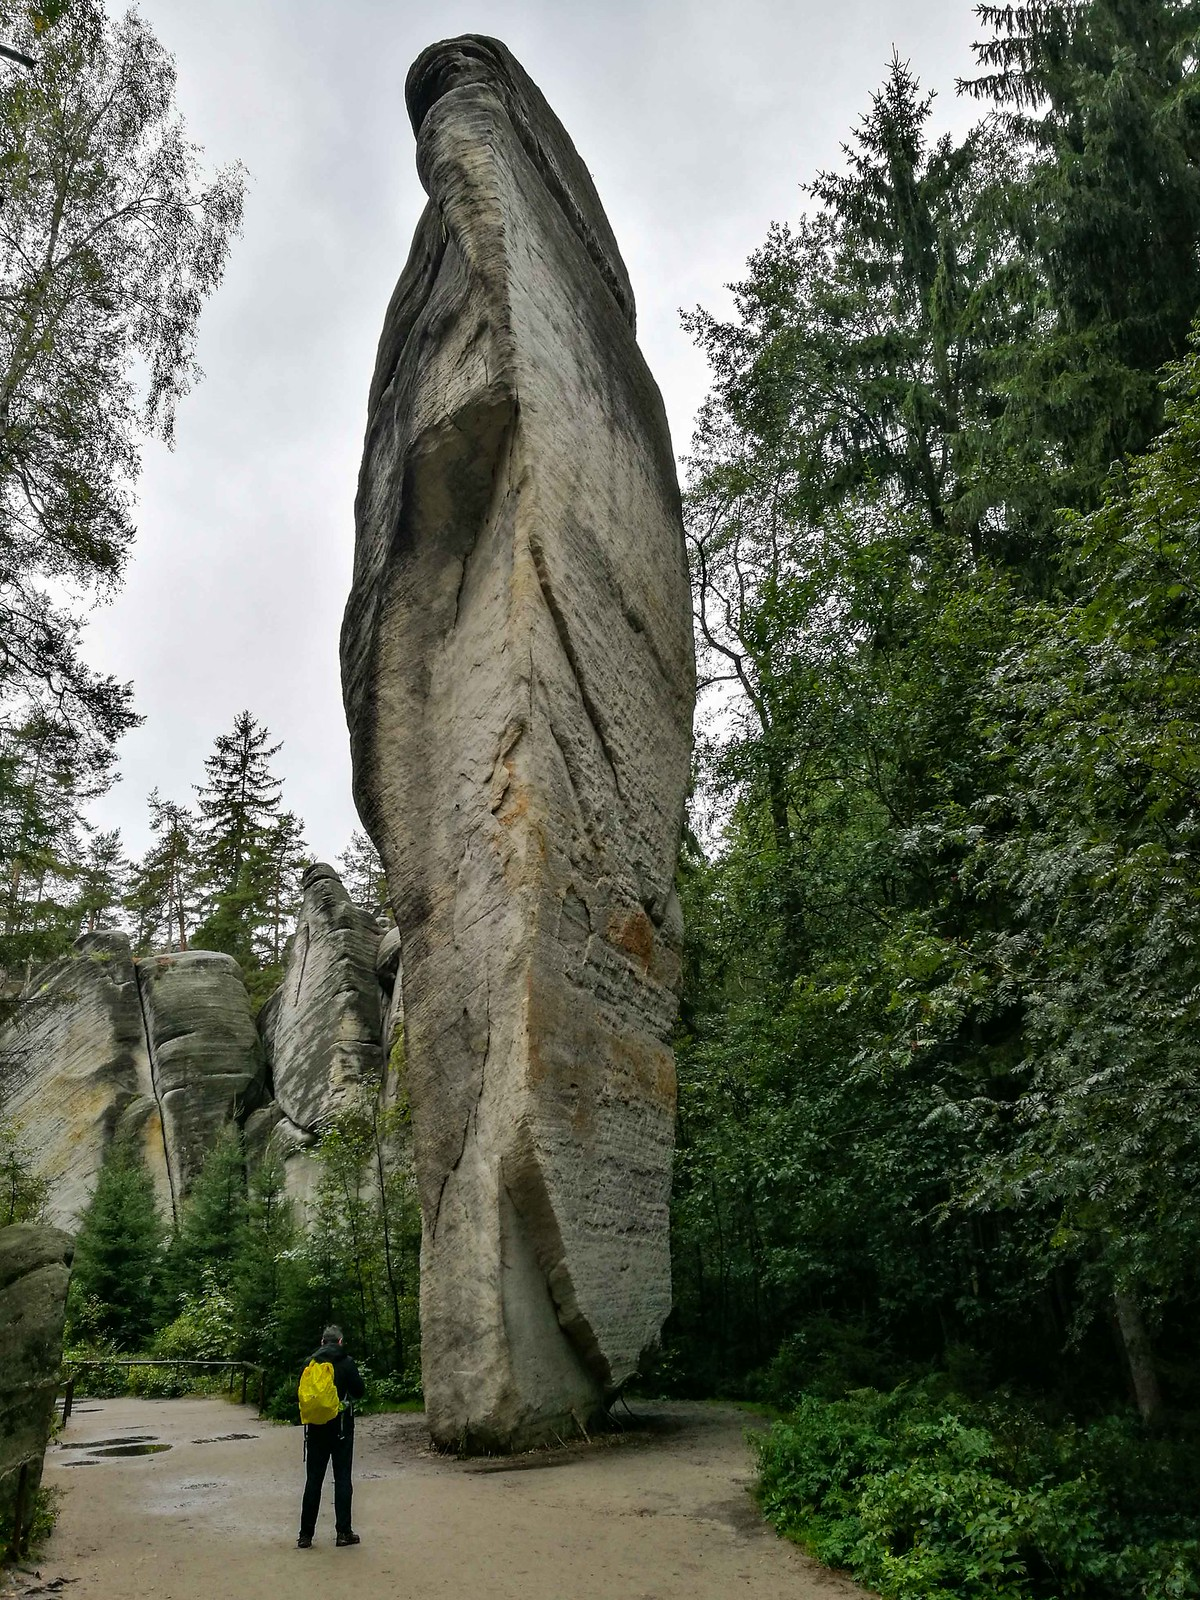 Hiking in the Czech Republic: Adrspach-Teplice Rock Towns